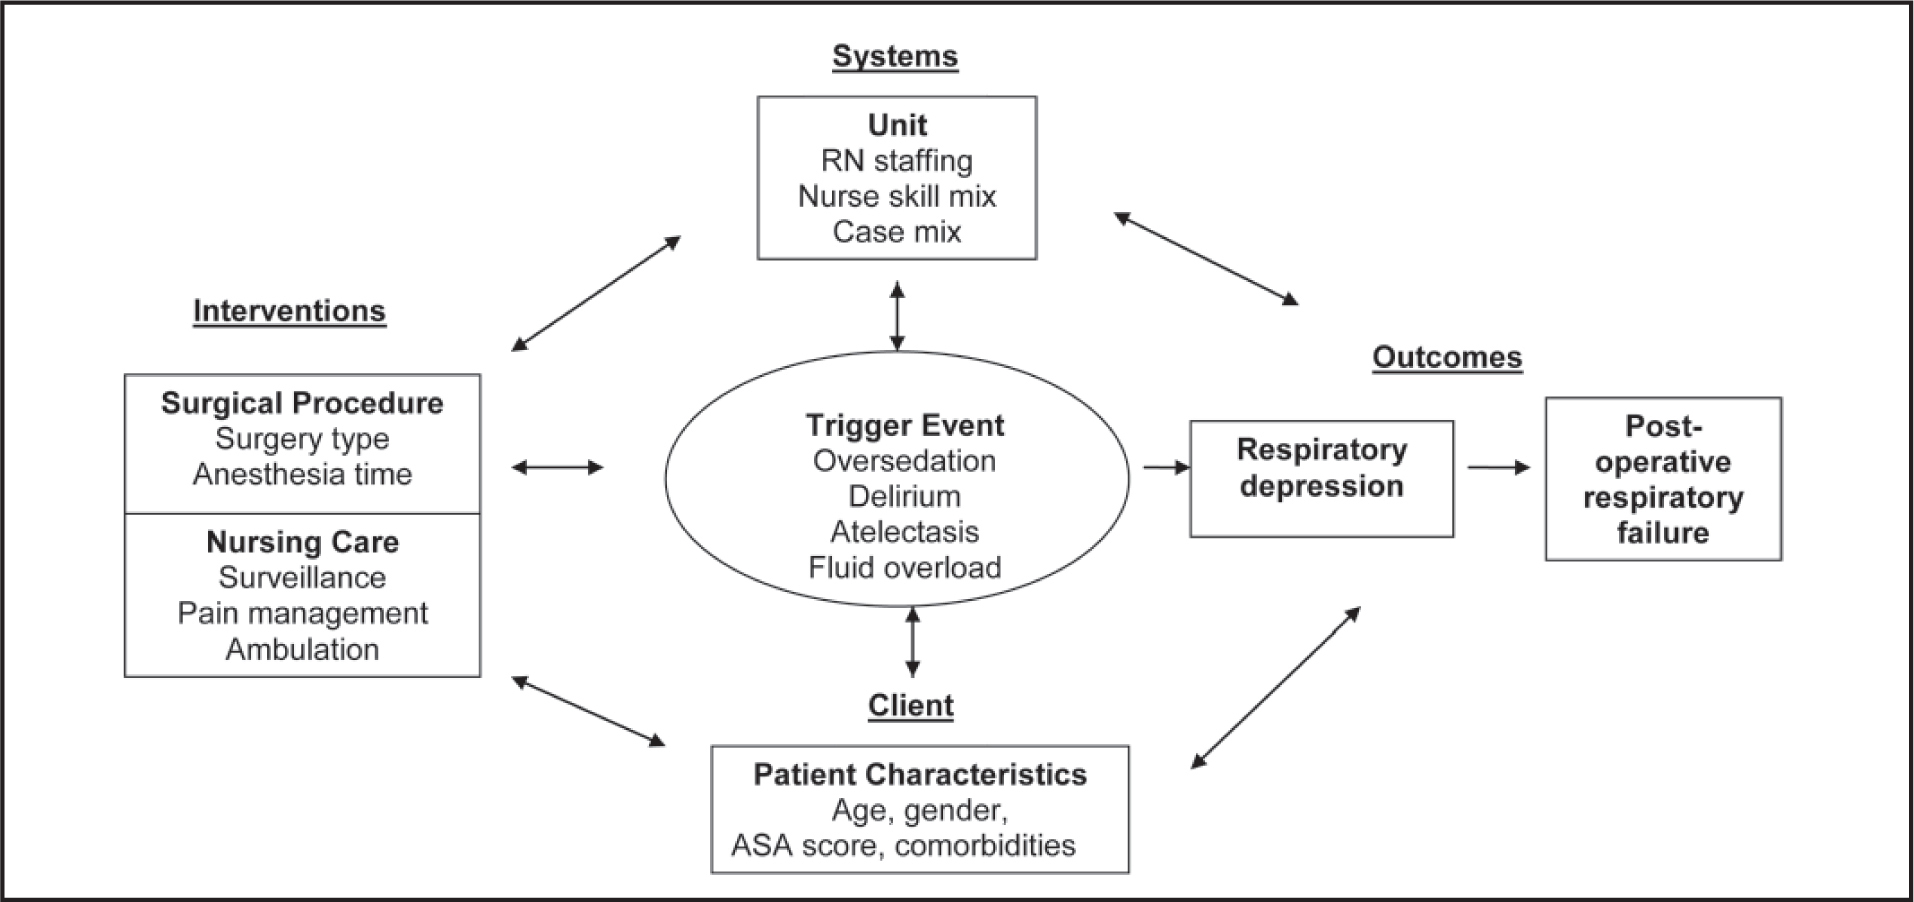 Cascade iatrogenesis framework for postoperative respiratory failure. Source: Thornlow, D., Anderson, R., & Oddone, E. (2009). Cascade iatrogenesis: Factors leading to the development of adverse events in hospitalized older adults. International Journal of Nursing Studies, 46(11), 1528–1535. Reprinted with permission.